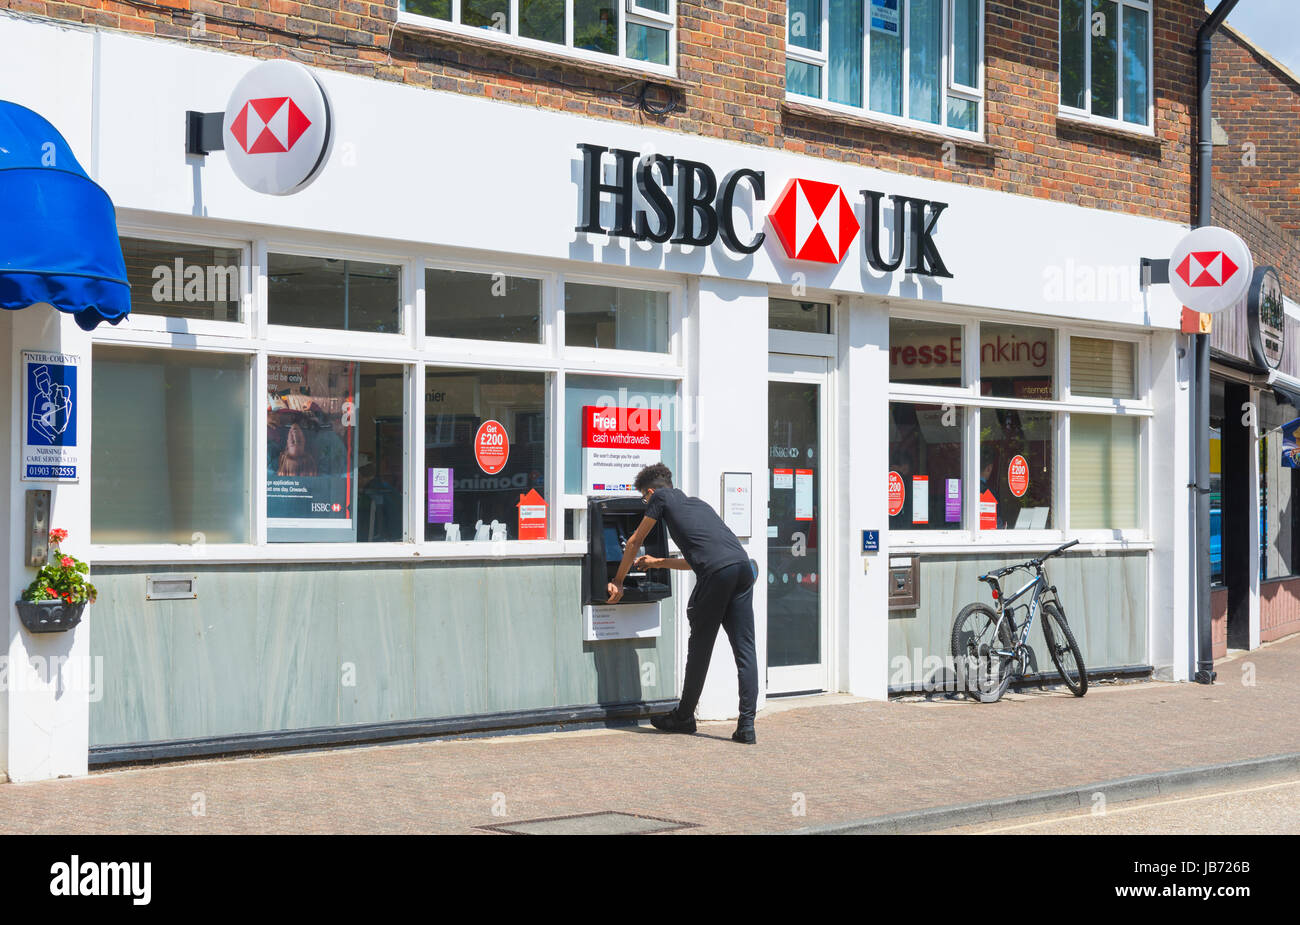 HSBC bank in the UK with person using cashpoint. Stock Photo